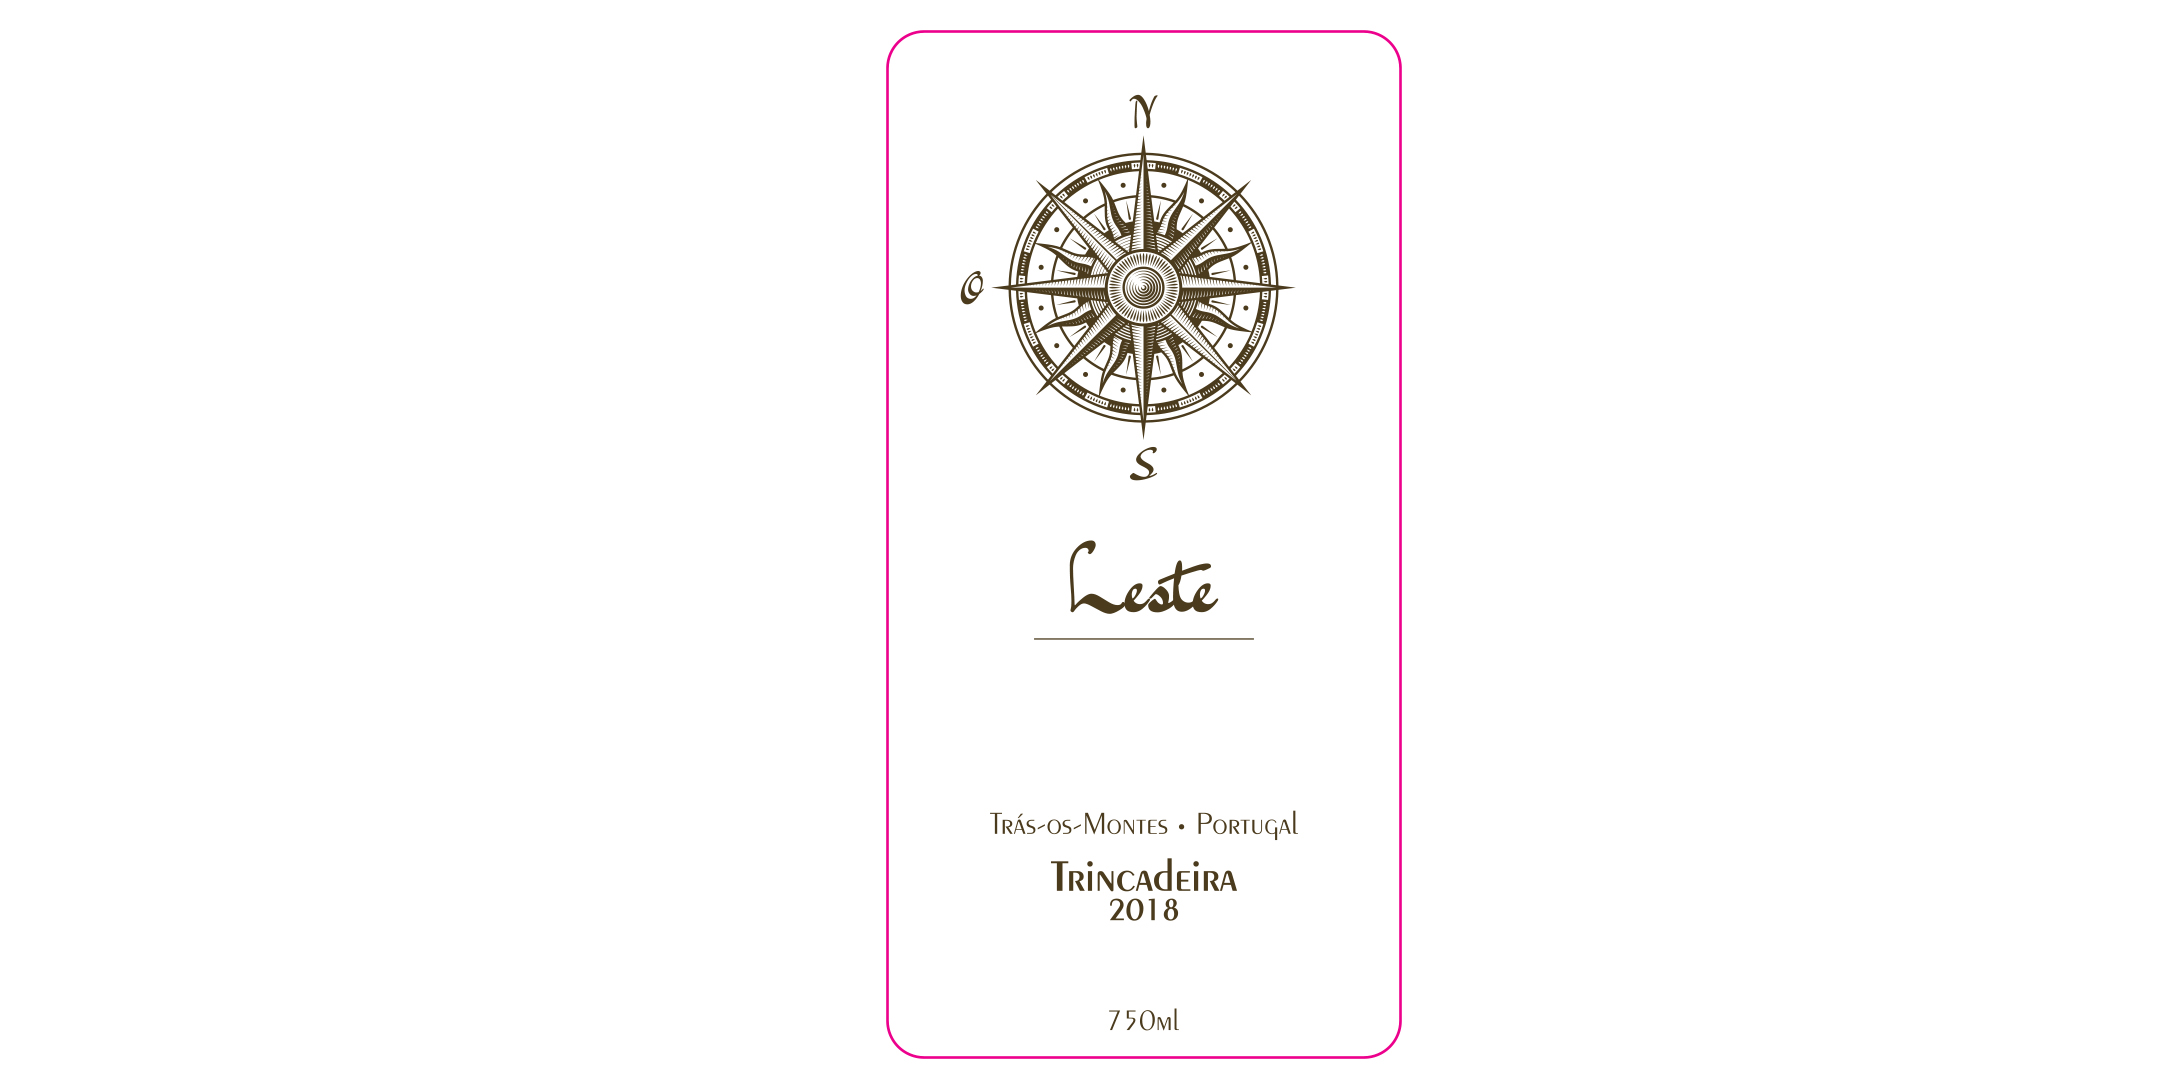 Self-Adhesive labelling - Embossed wine labels